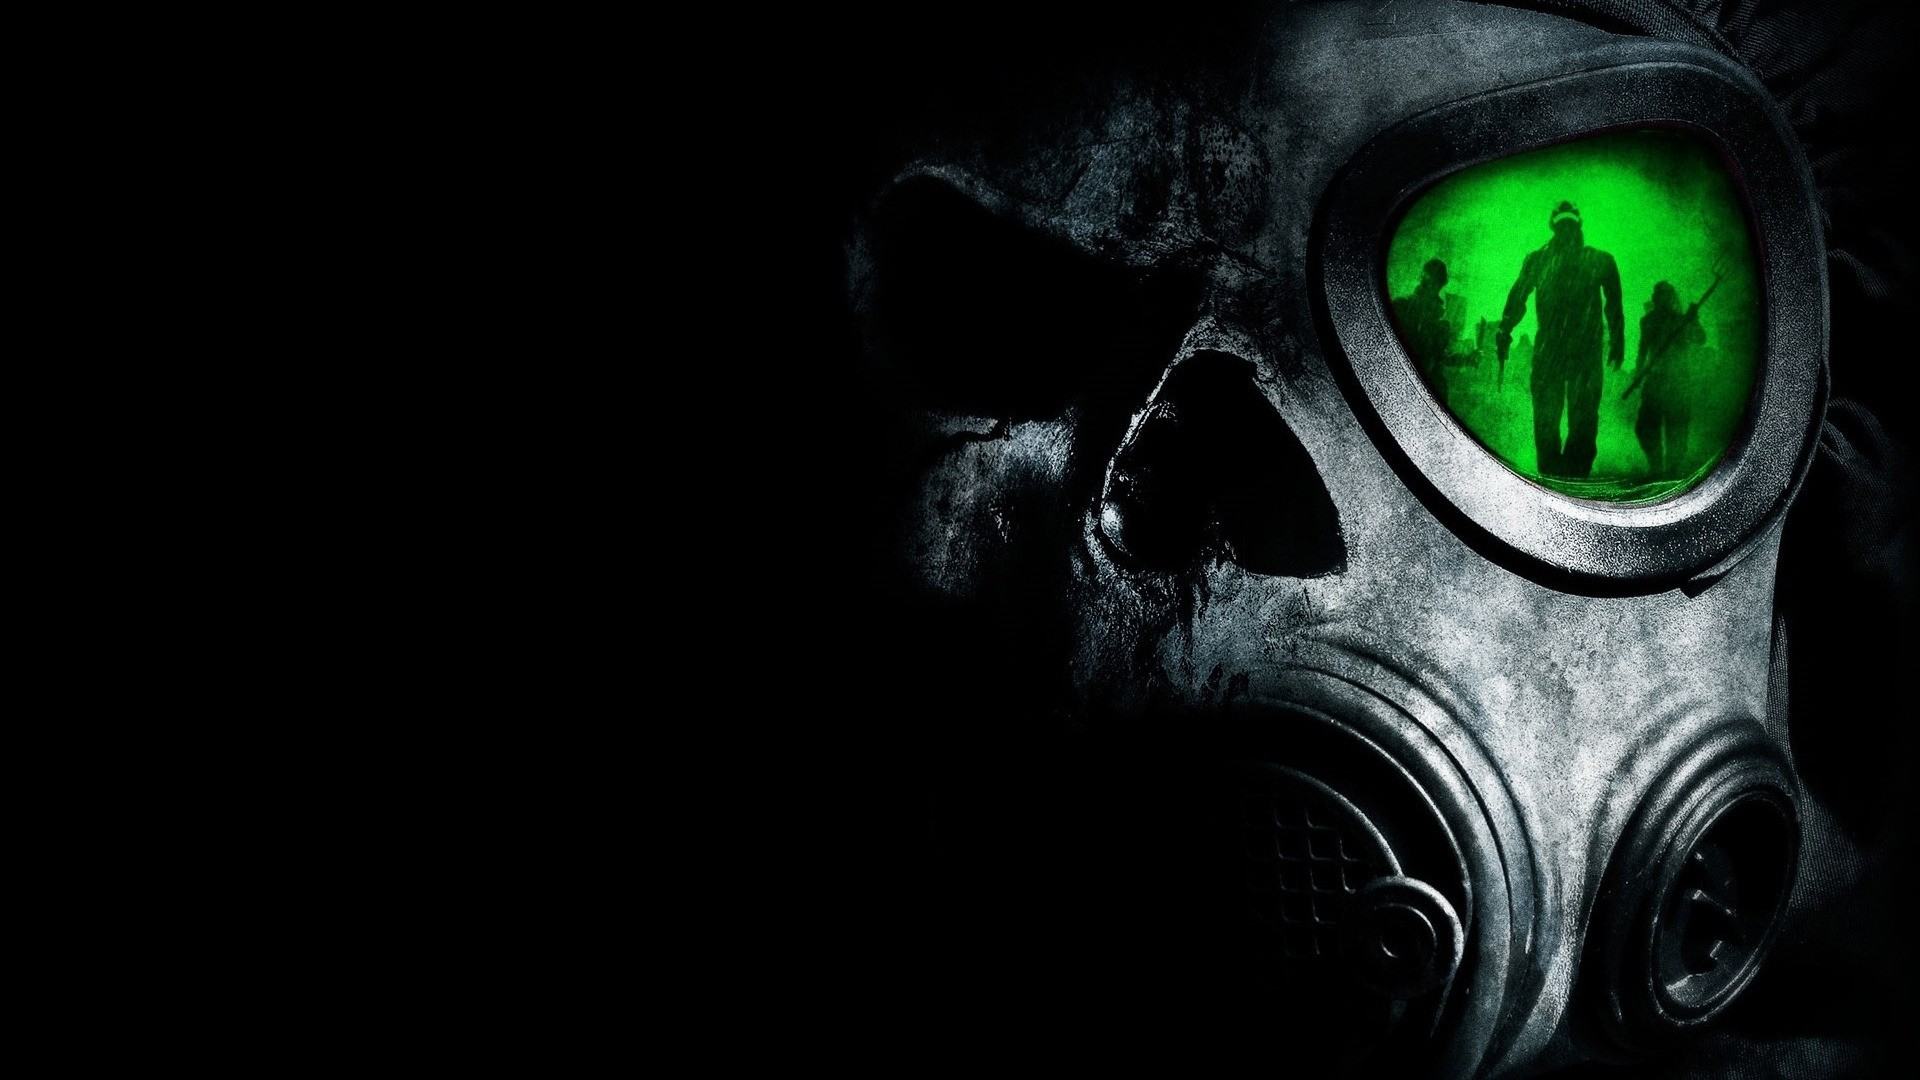 1920x1080 Title : cool hd skull wallpapers. Dimension : 1920 x 1080. File Type :  JPG/JPEG